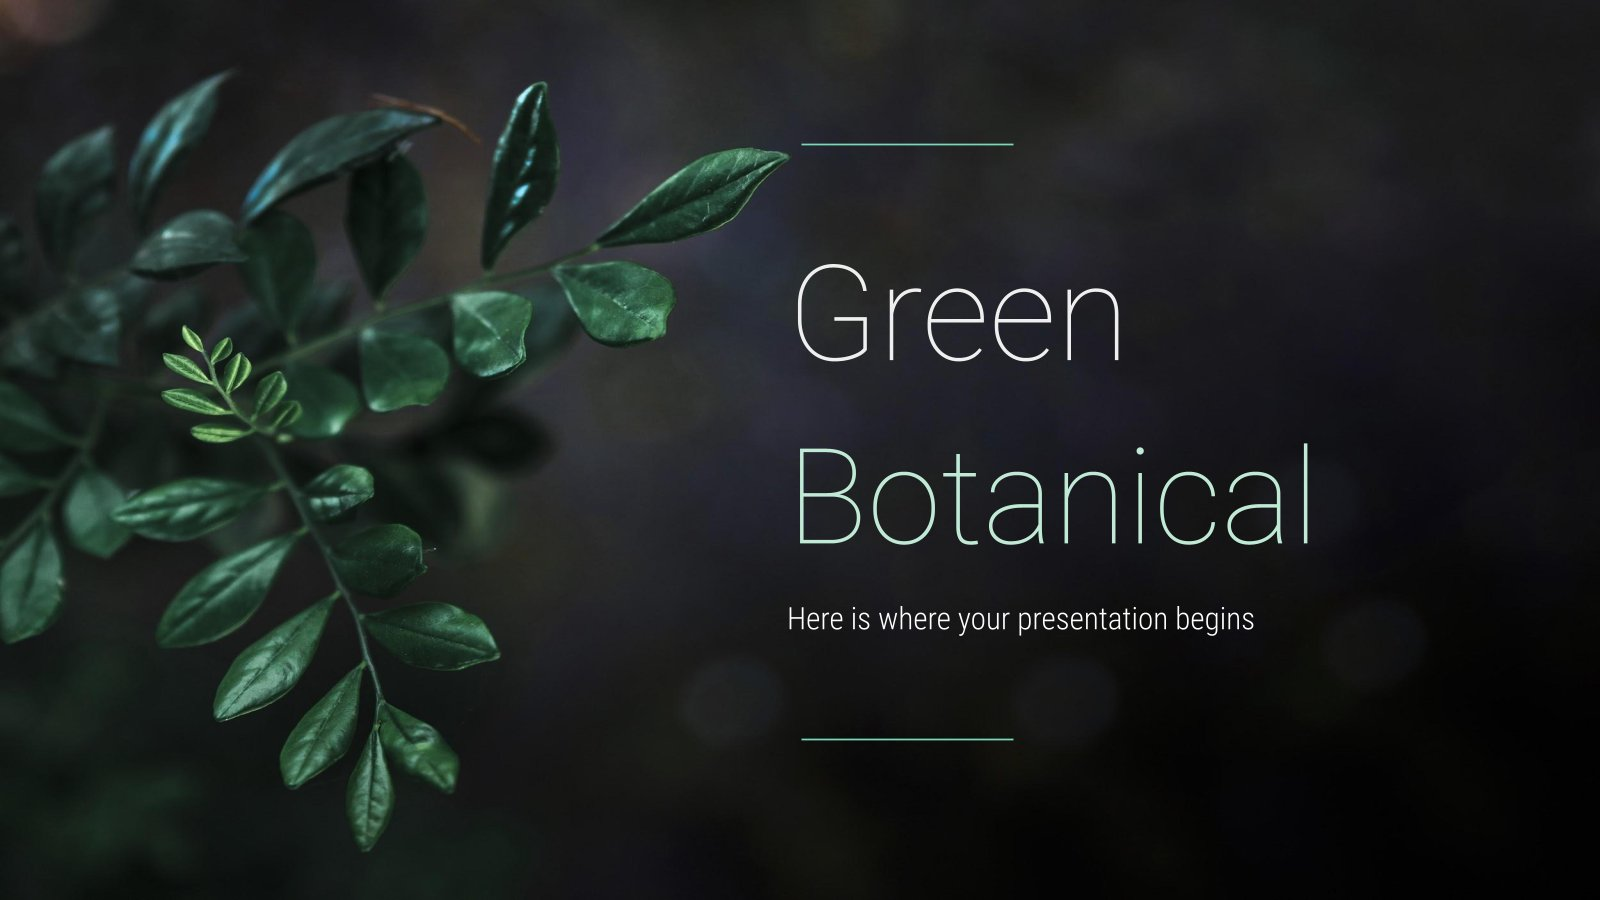 Green Botanical presentation template